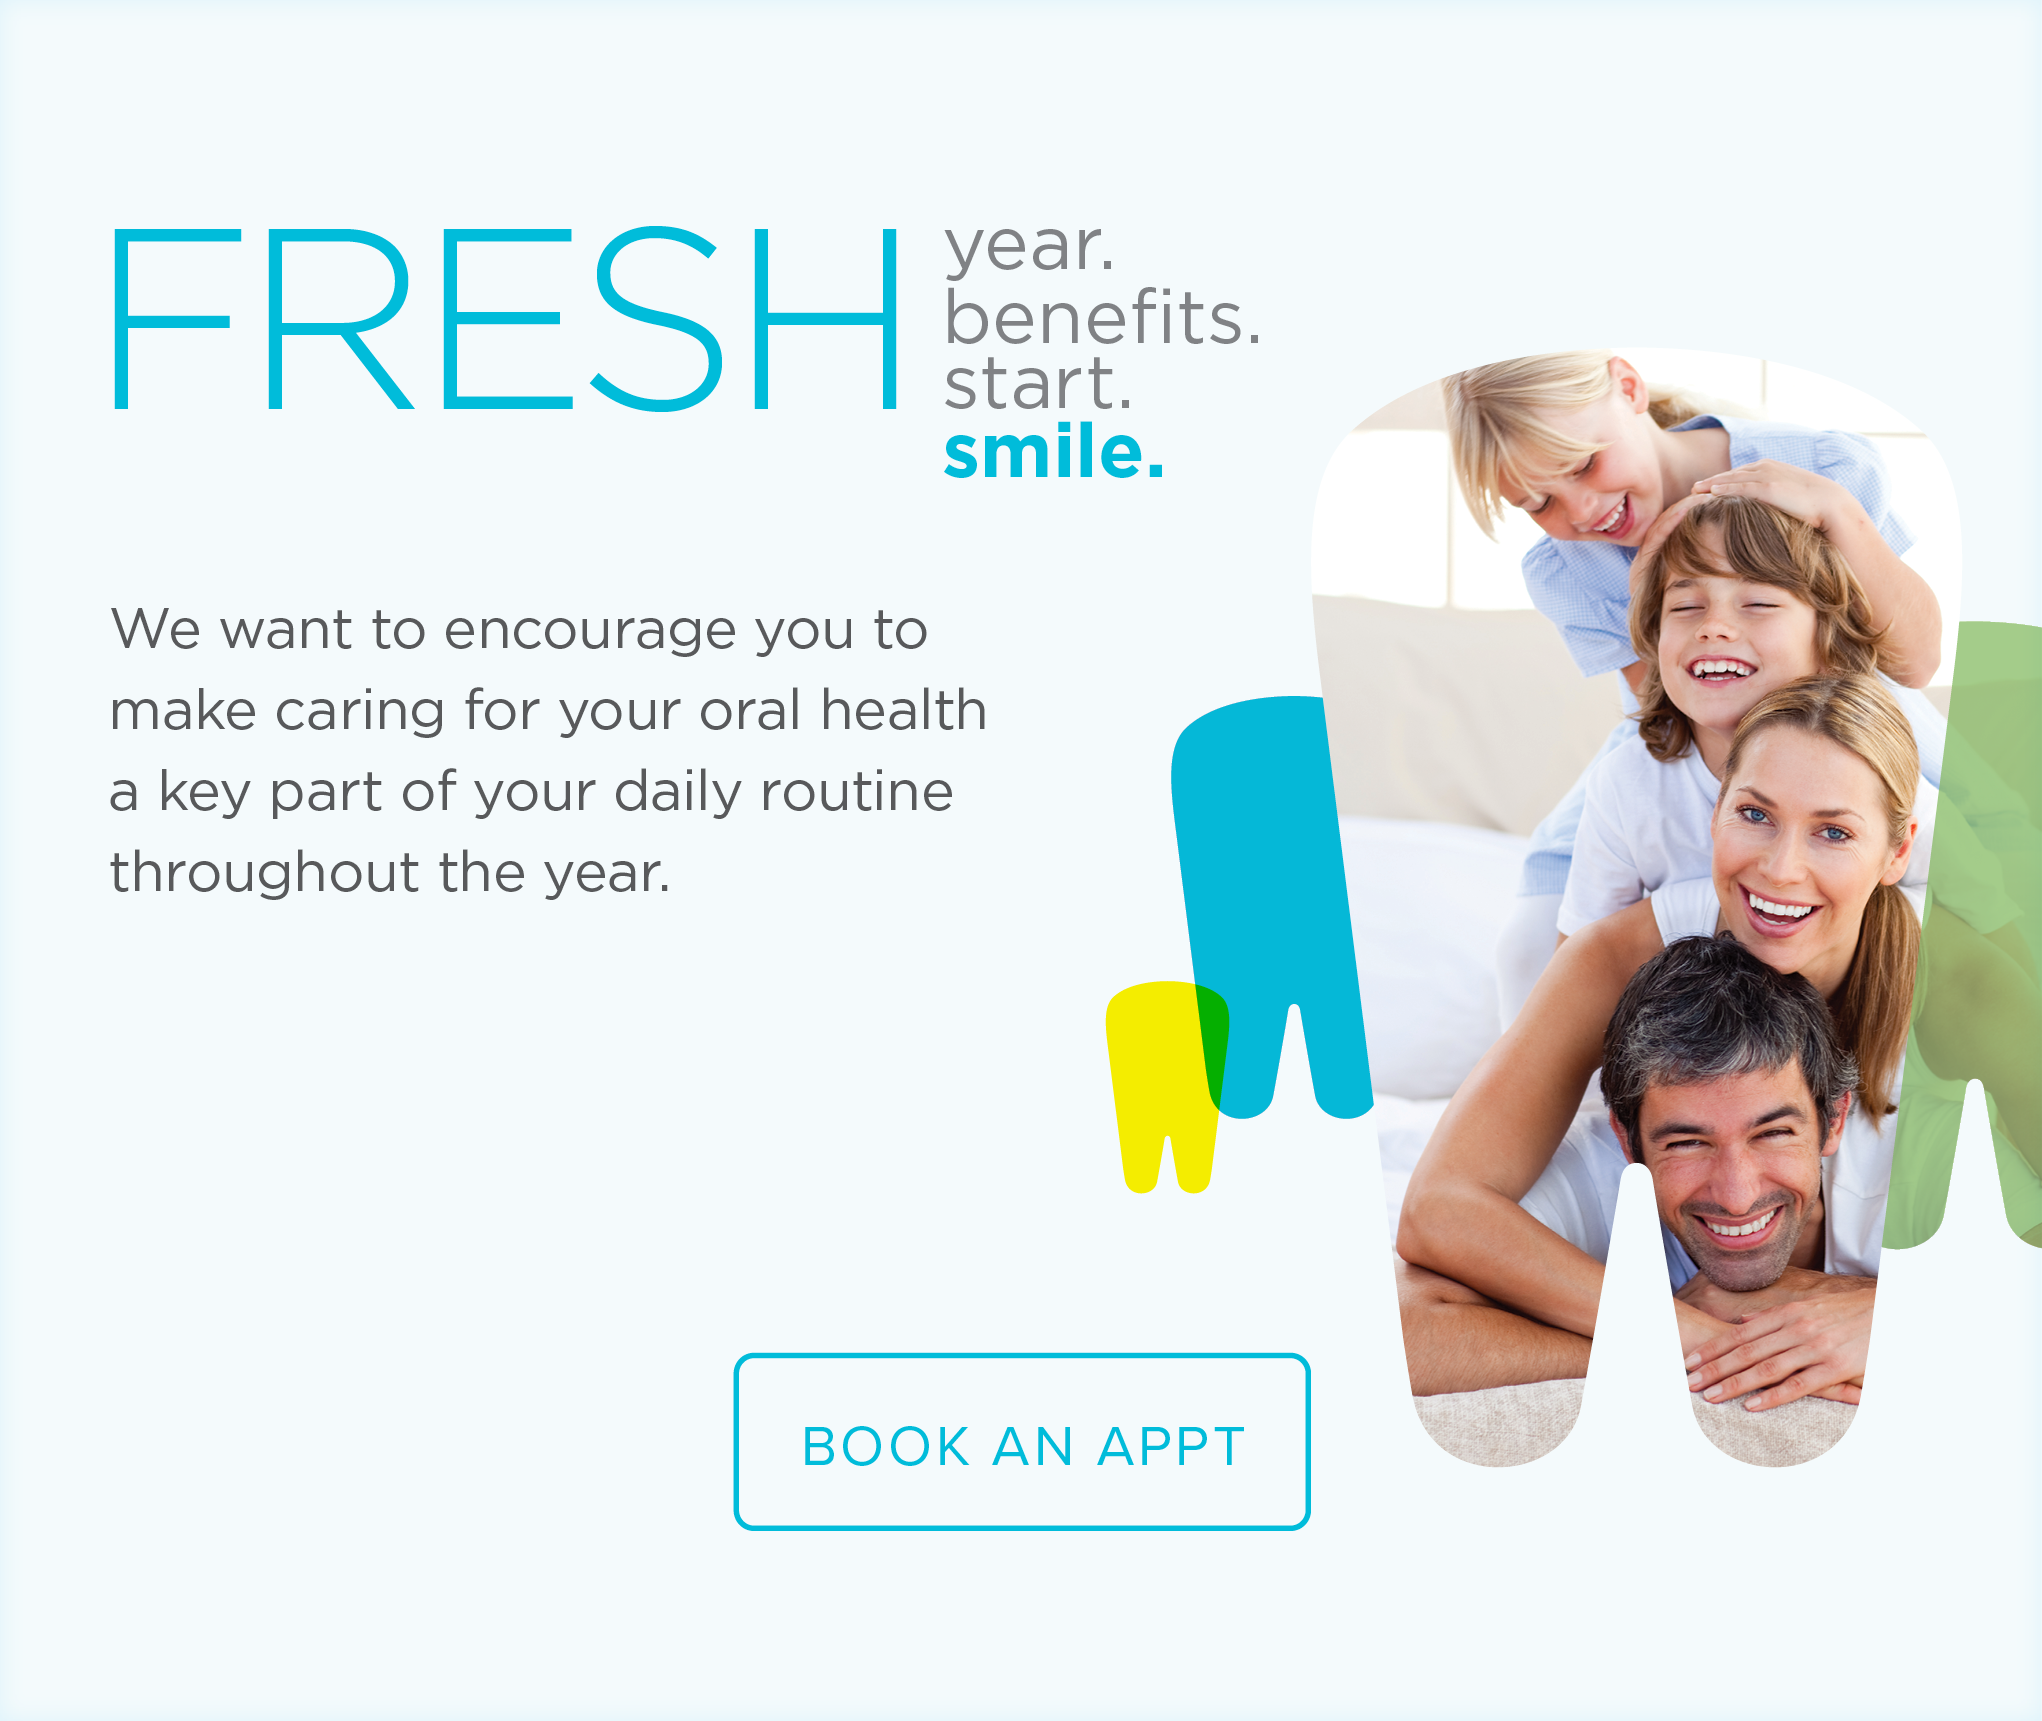 Northwest Austin Dentists - Make the Most of Your Benefits